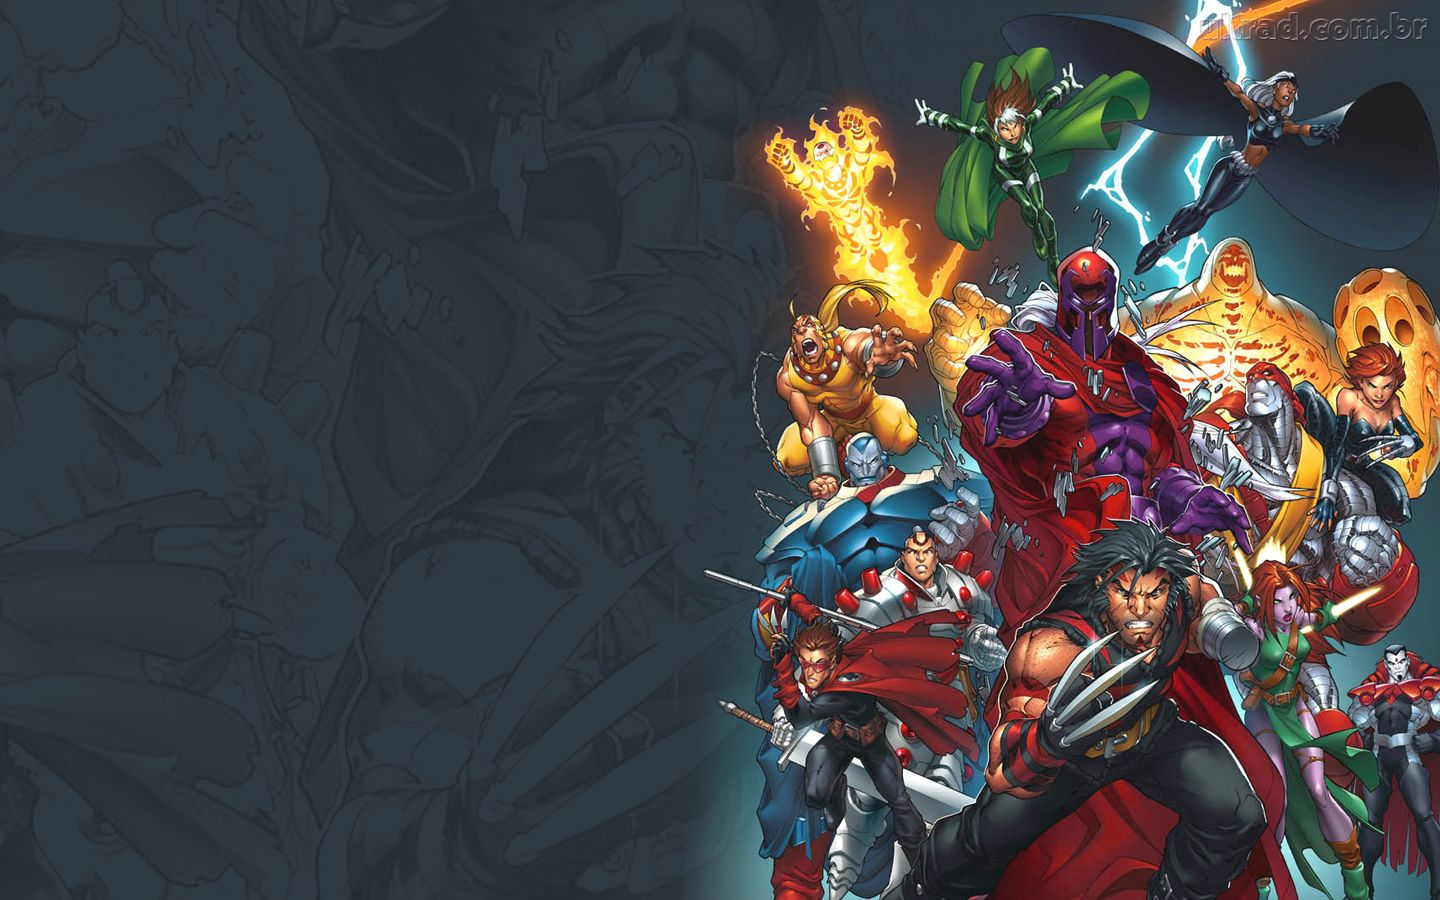 Papel de Parede X Men   Era do Apocalipse 1440x900